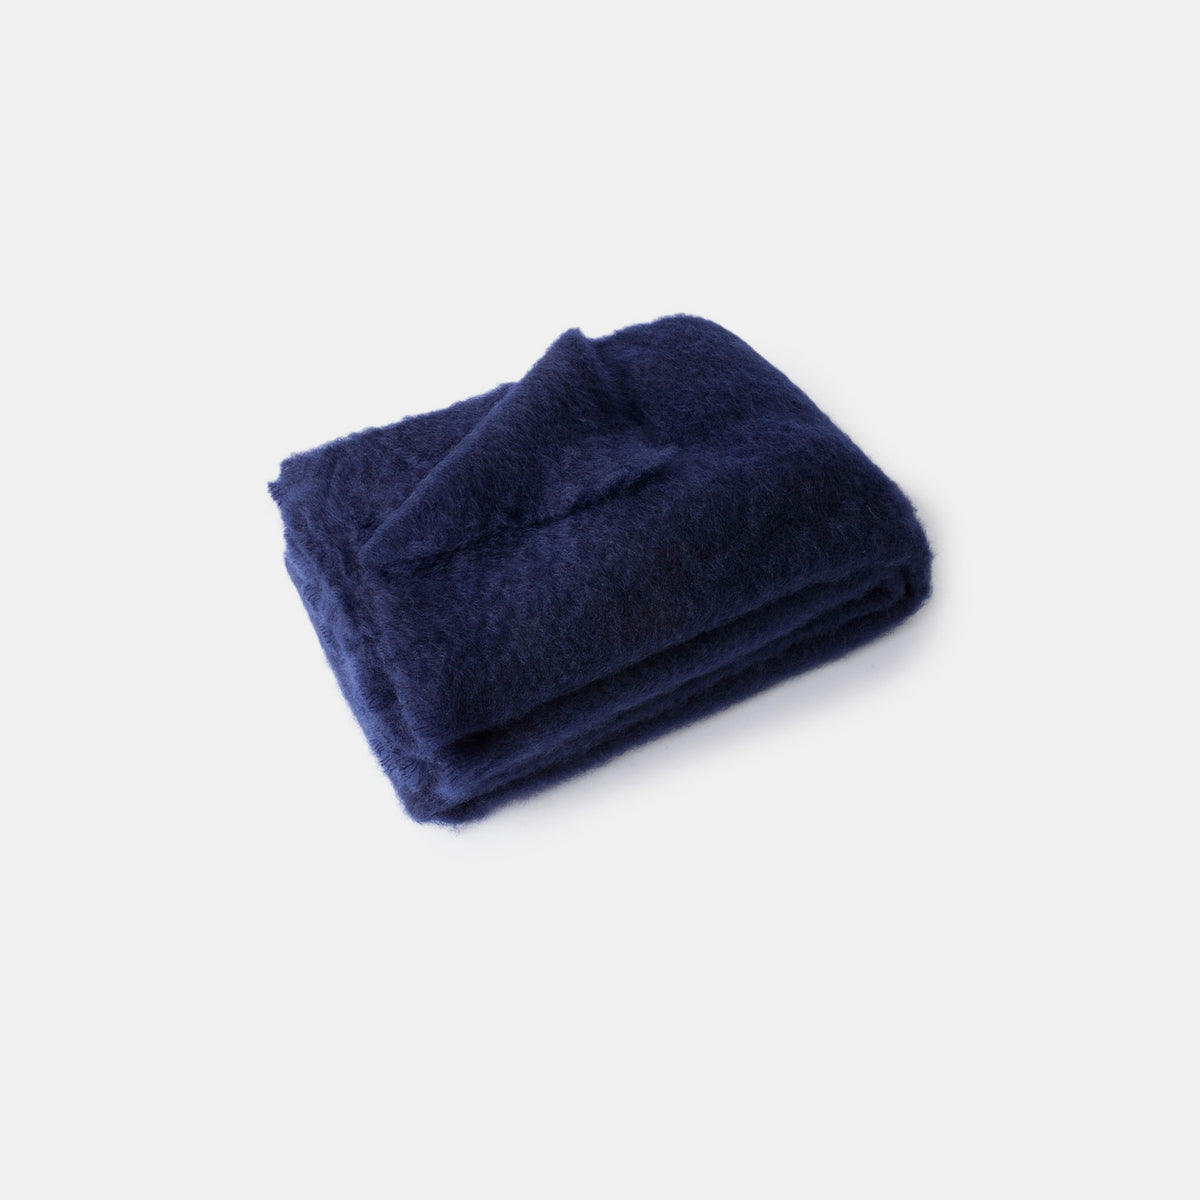 Mohair Blanket - Navy Blue